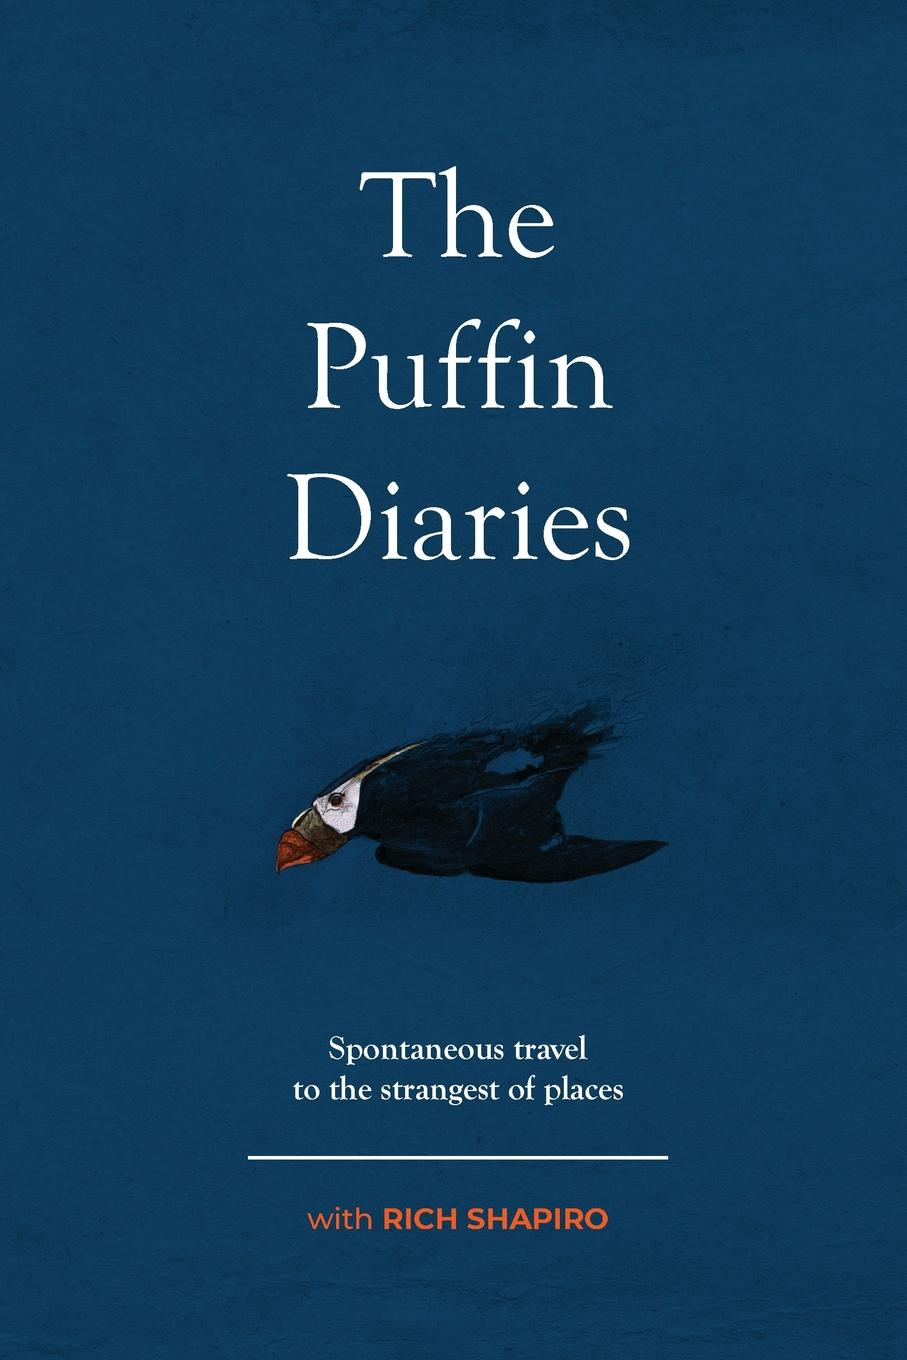 Rich Shapiro The Puffin Diaries. Spontaneous Travel to the Strangest of Places